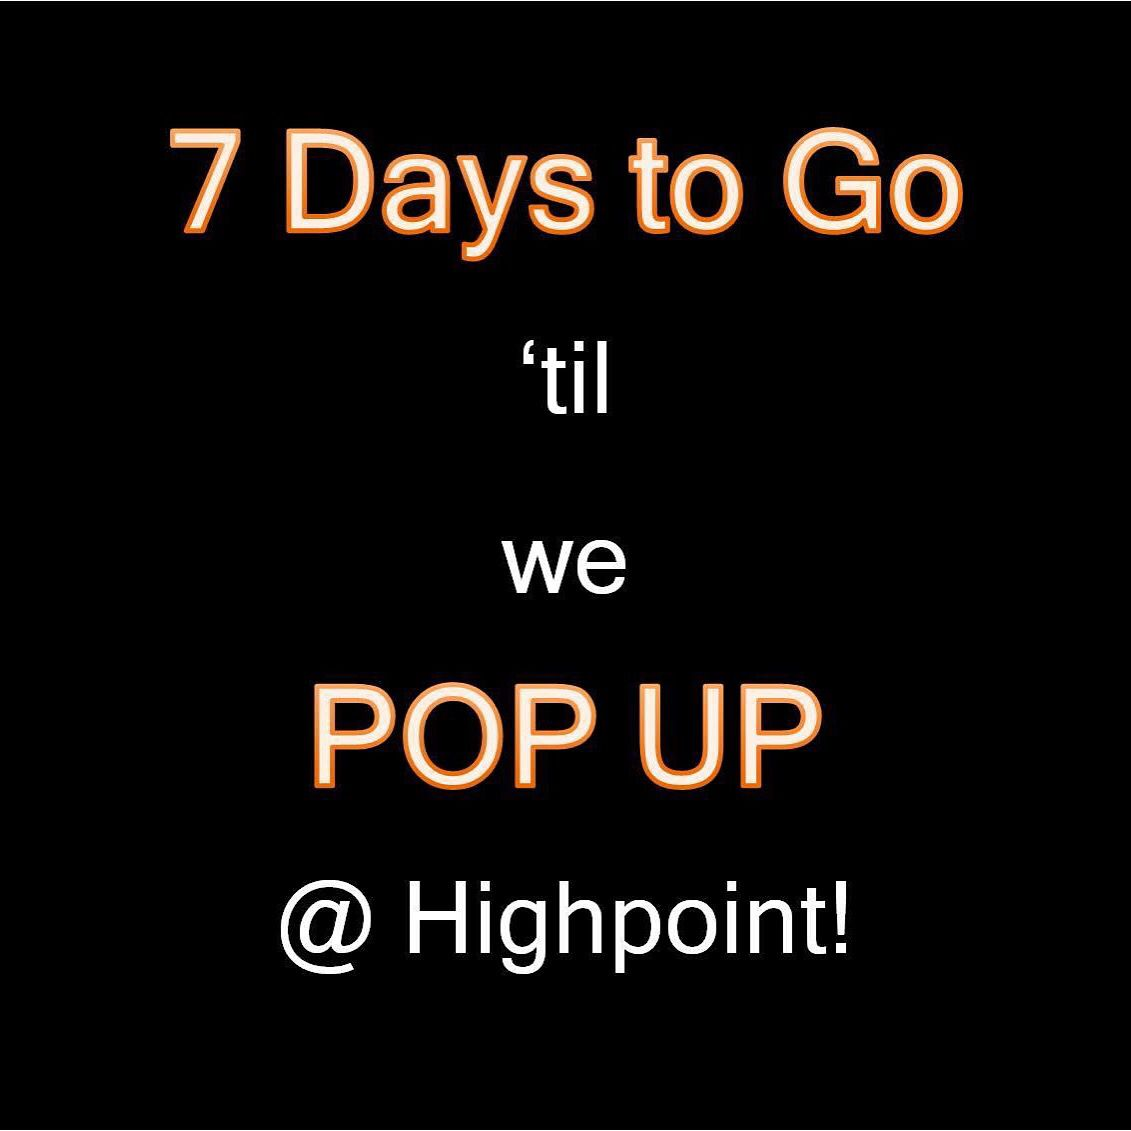 Not long to go!! 😄😄😄  #popup #proyagerpopup #popupmelbourne #melbournepopups #melbournepopup #melbourne #maribyrnong #highpoint #proyager #proyageraus #canvasbag #messengerbag #laptopbag #totes #satchel #travelbag #slingbag #camerabag #canvastote #canvastotebag #canvasmessengerbag #backpack #laptopbackpack #Australianowned #Australia #mensbag #womensbag #putitinaproyager #bag #bags